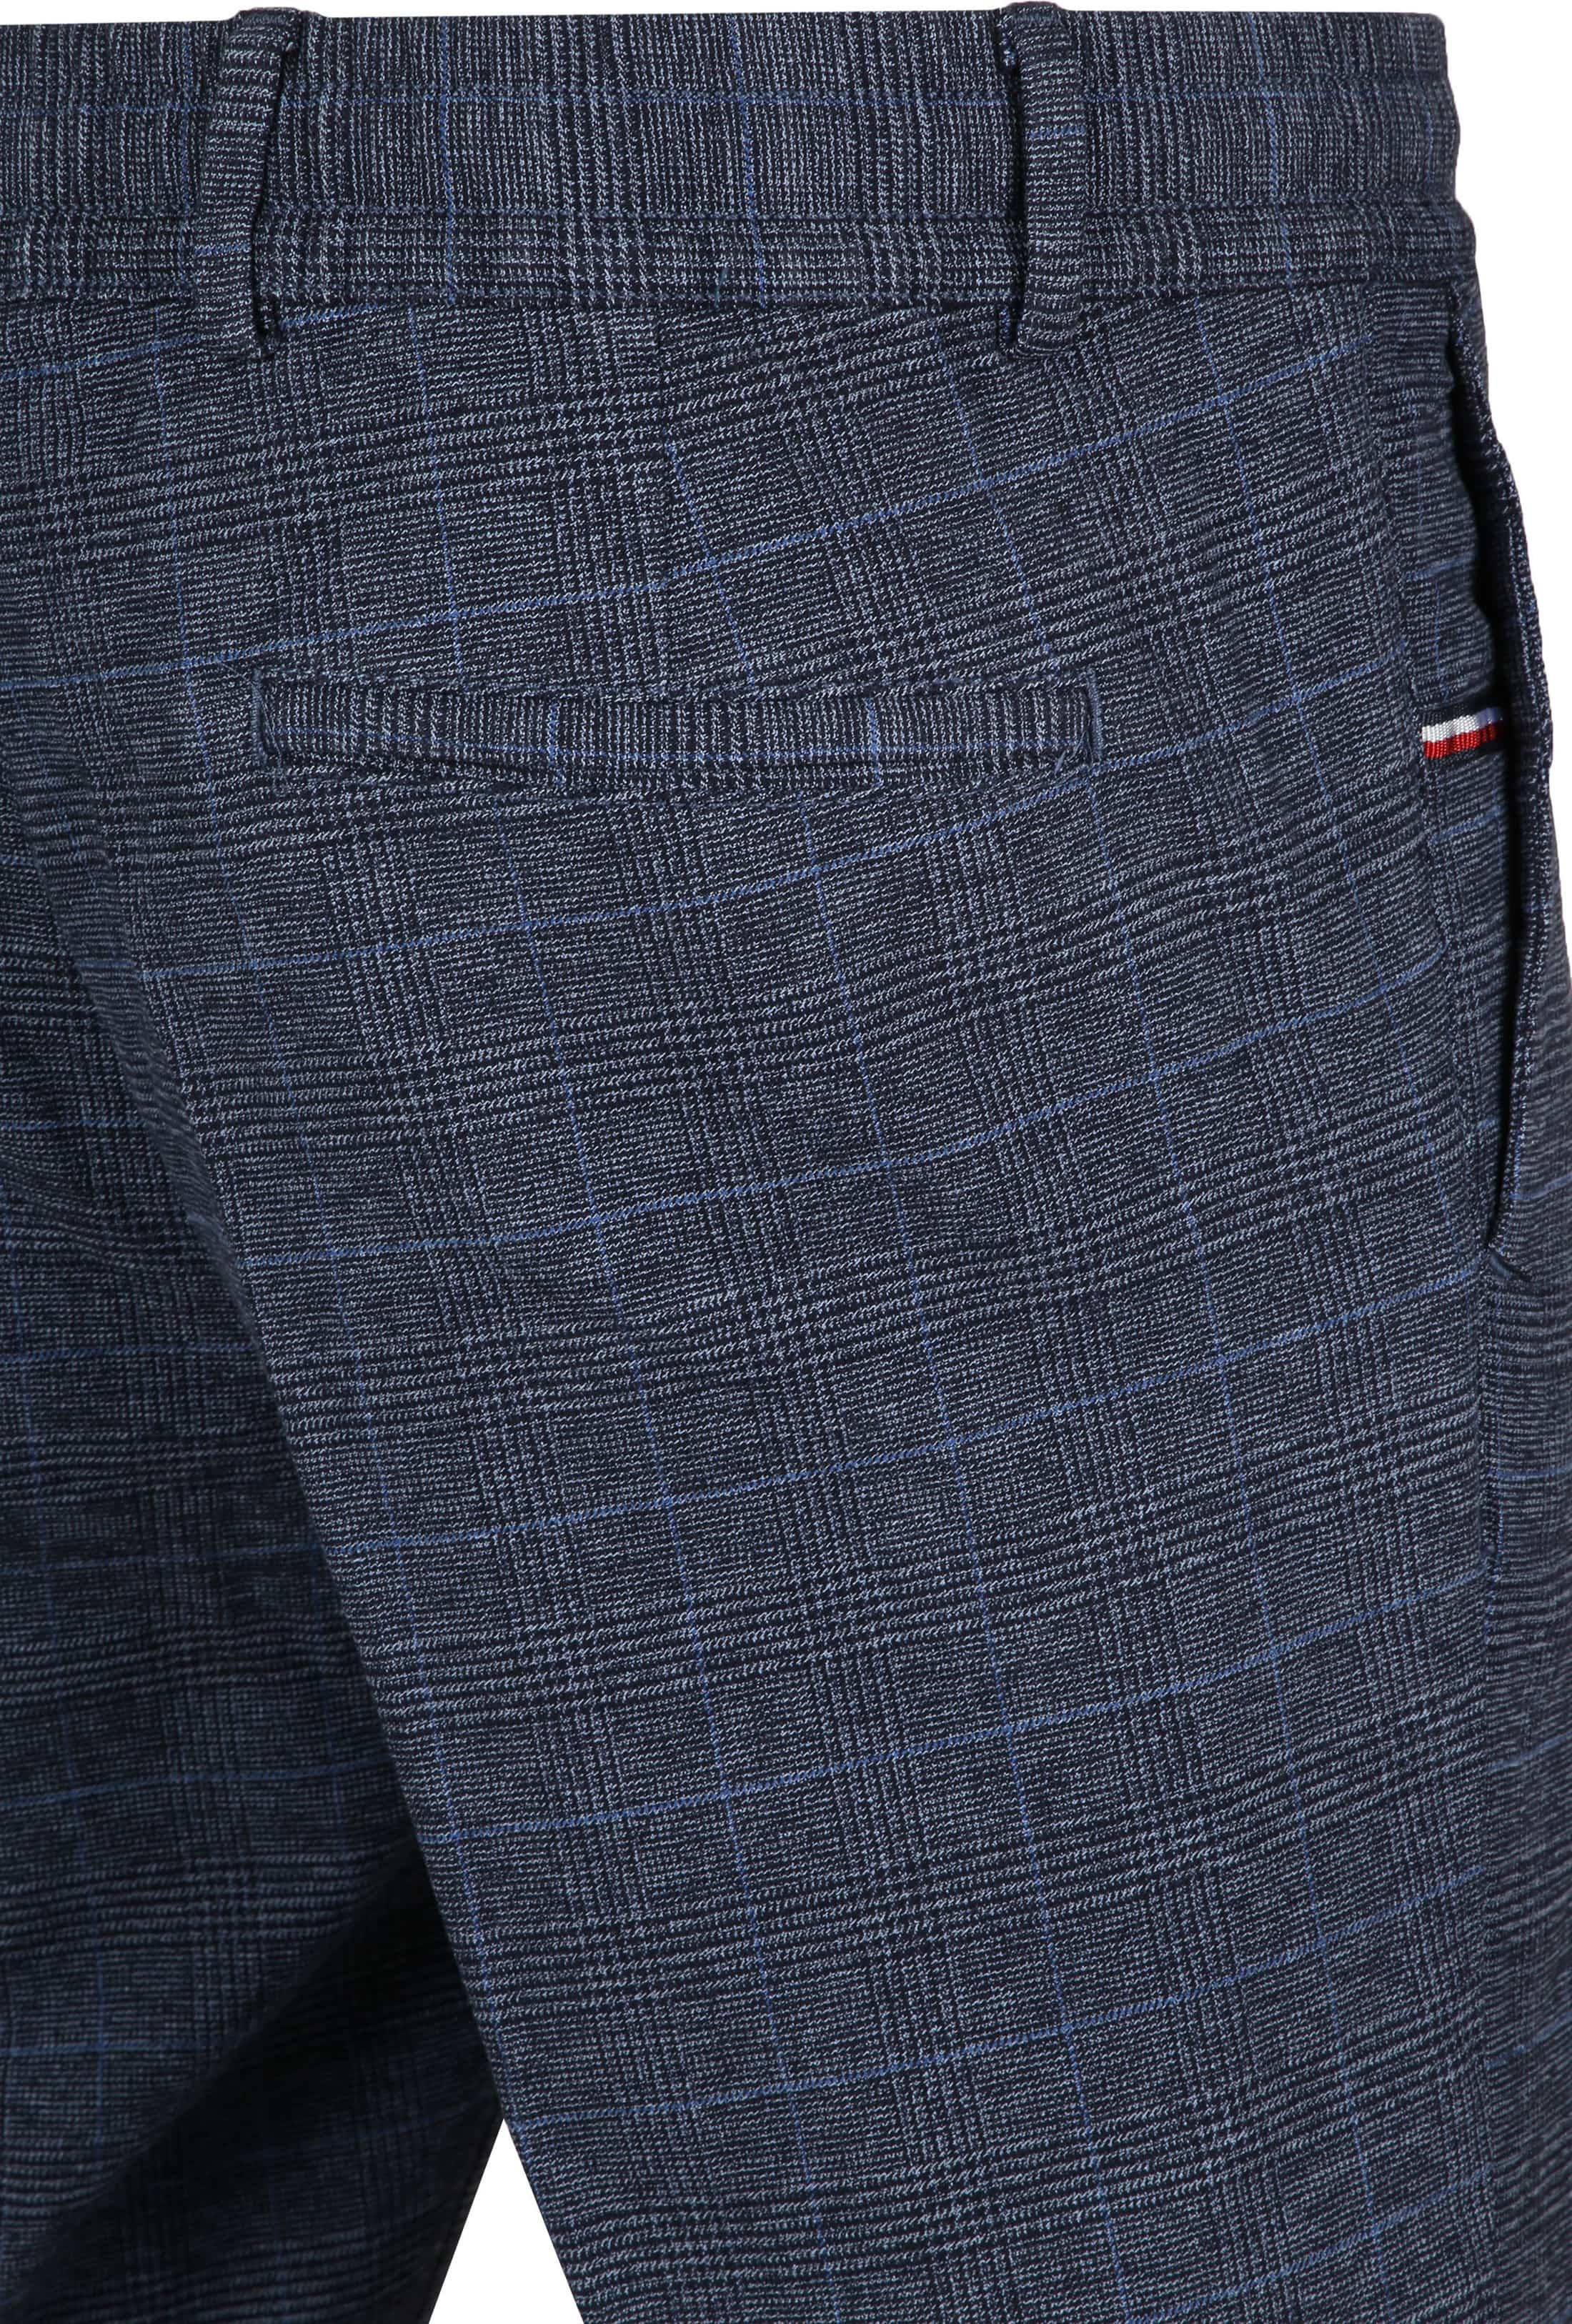 Tommy Hilfiger Active Pants Checks Navy foto 3